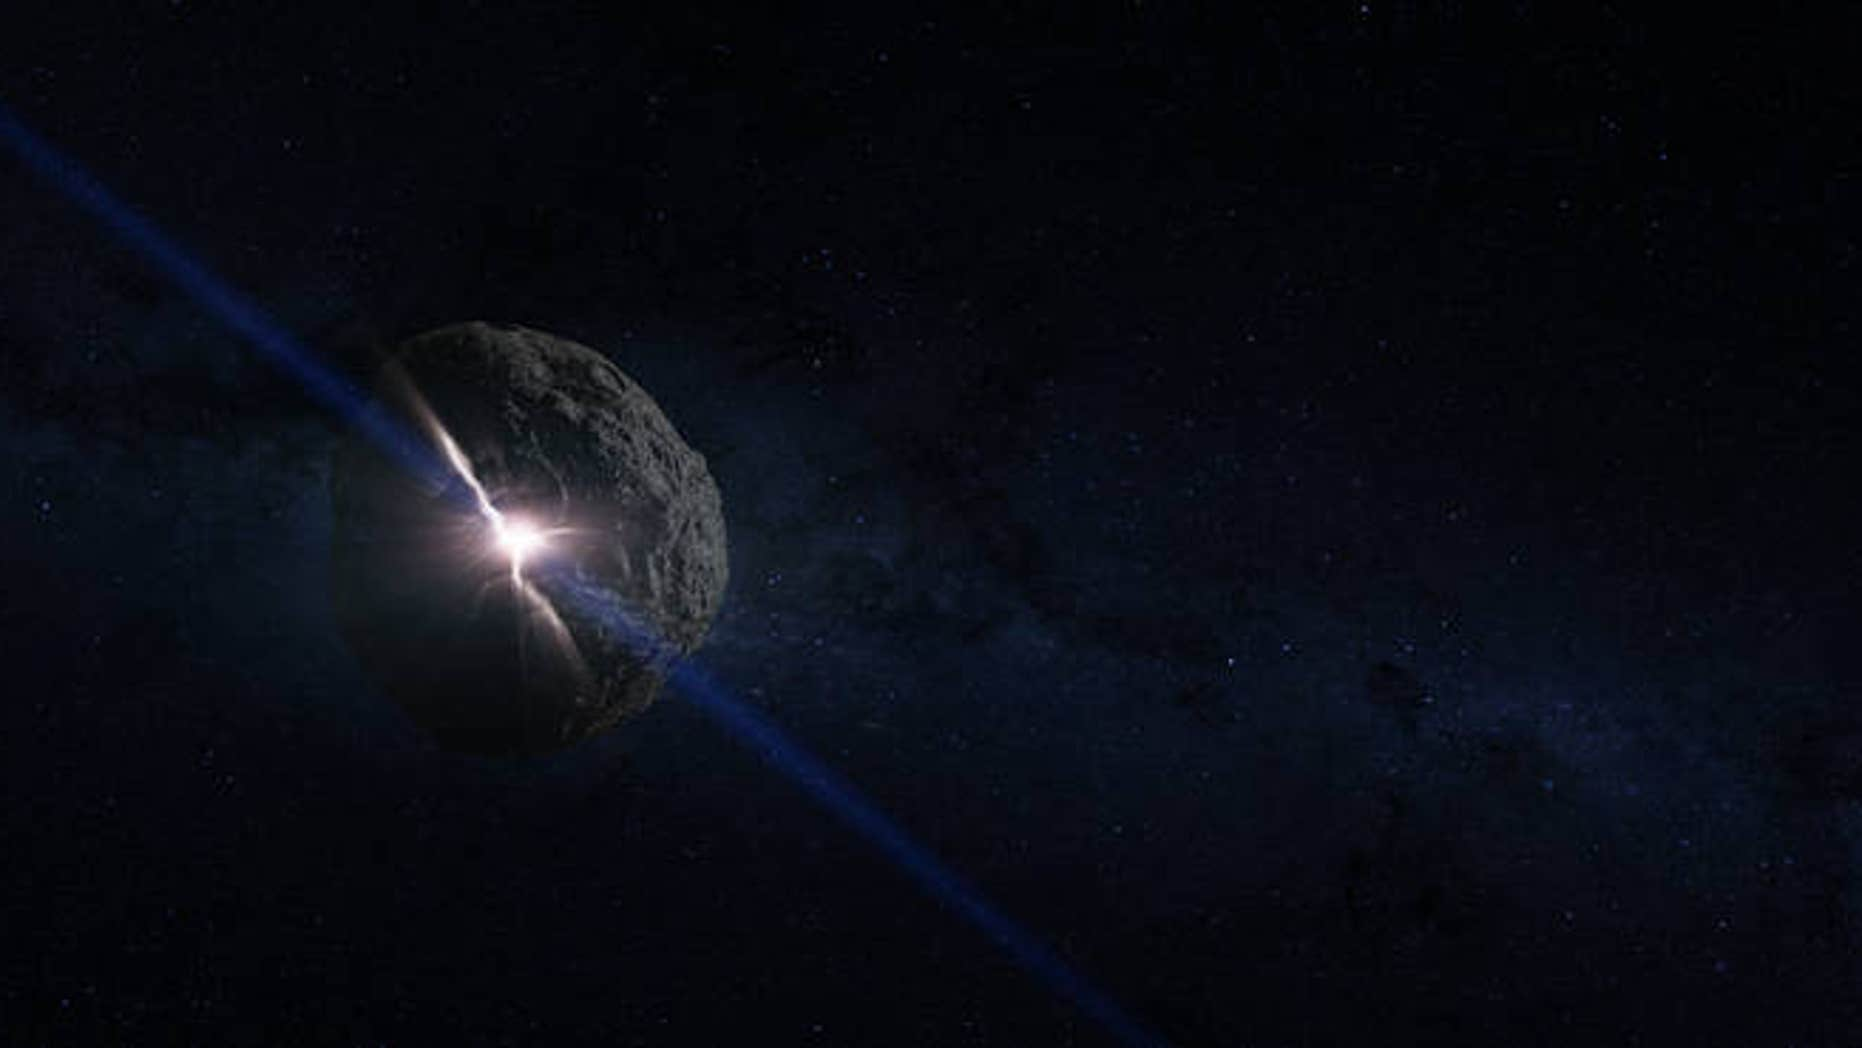 Artist's concept of the impact that created the asteroid Bennu. (Credits: NASA's Goddard Space Flight Center Conceptual Image Lab)